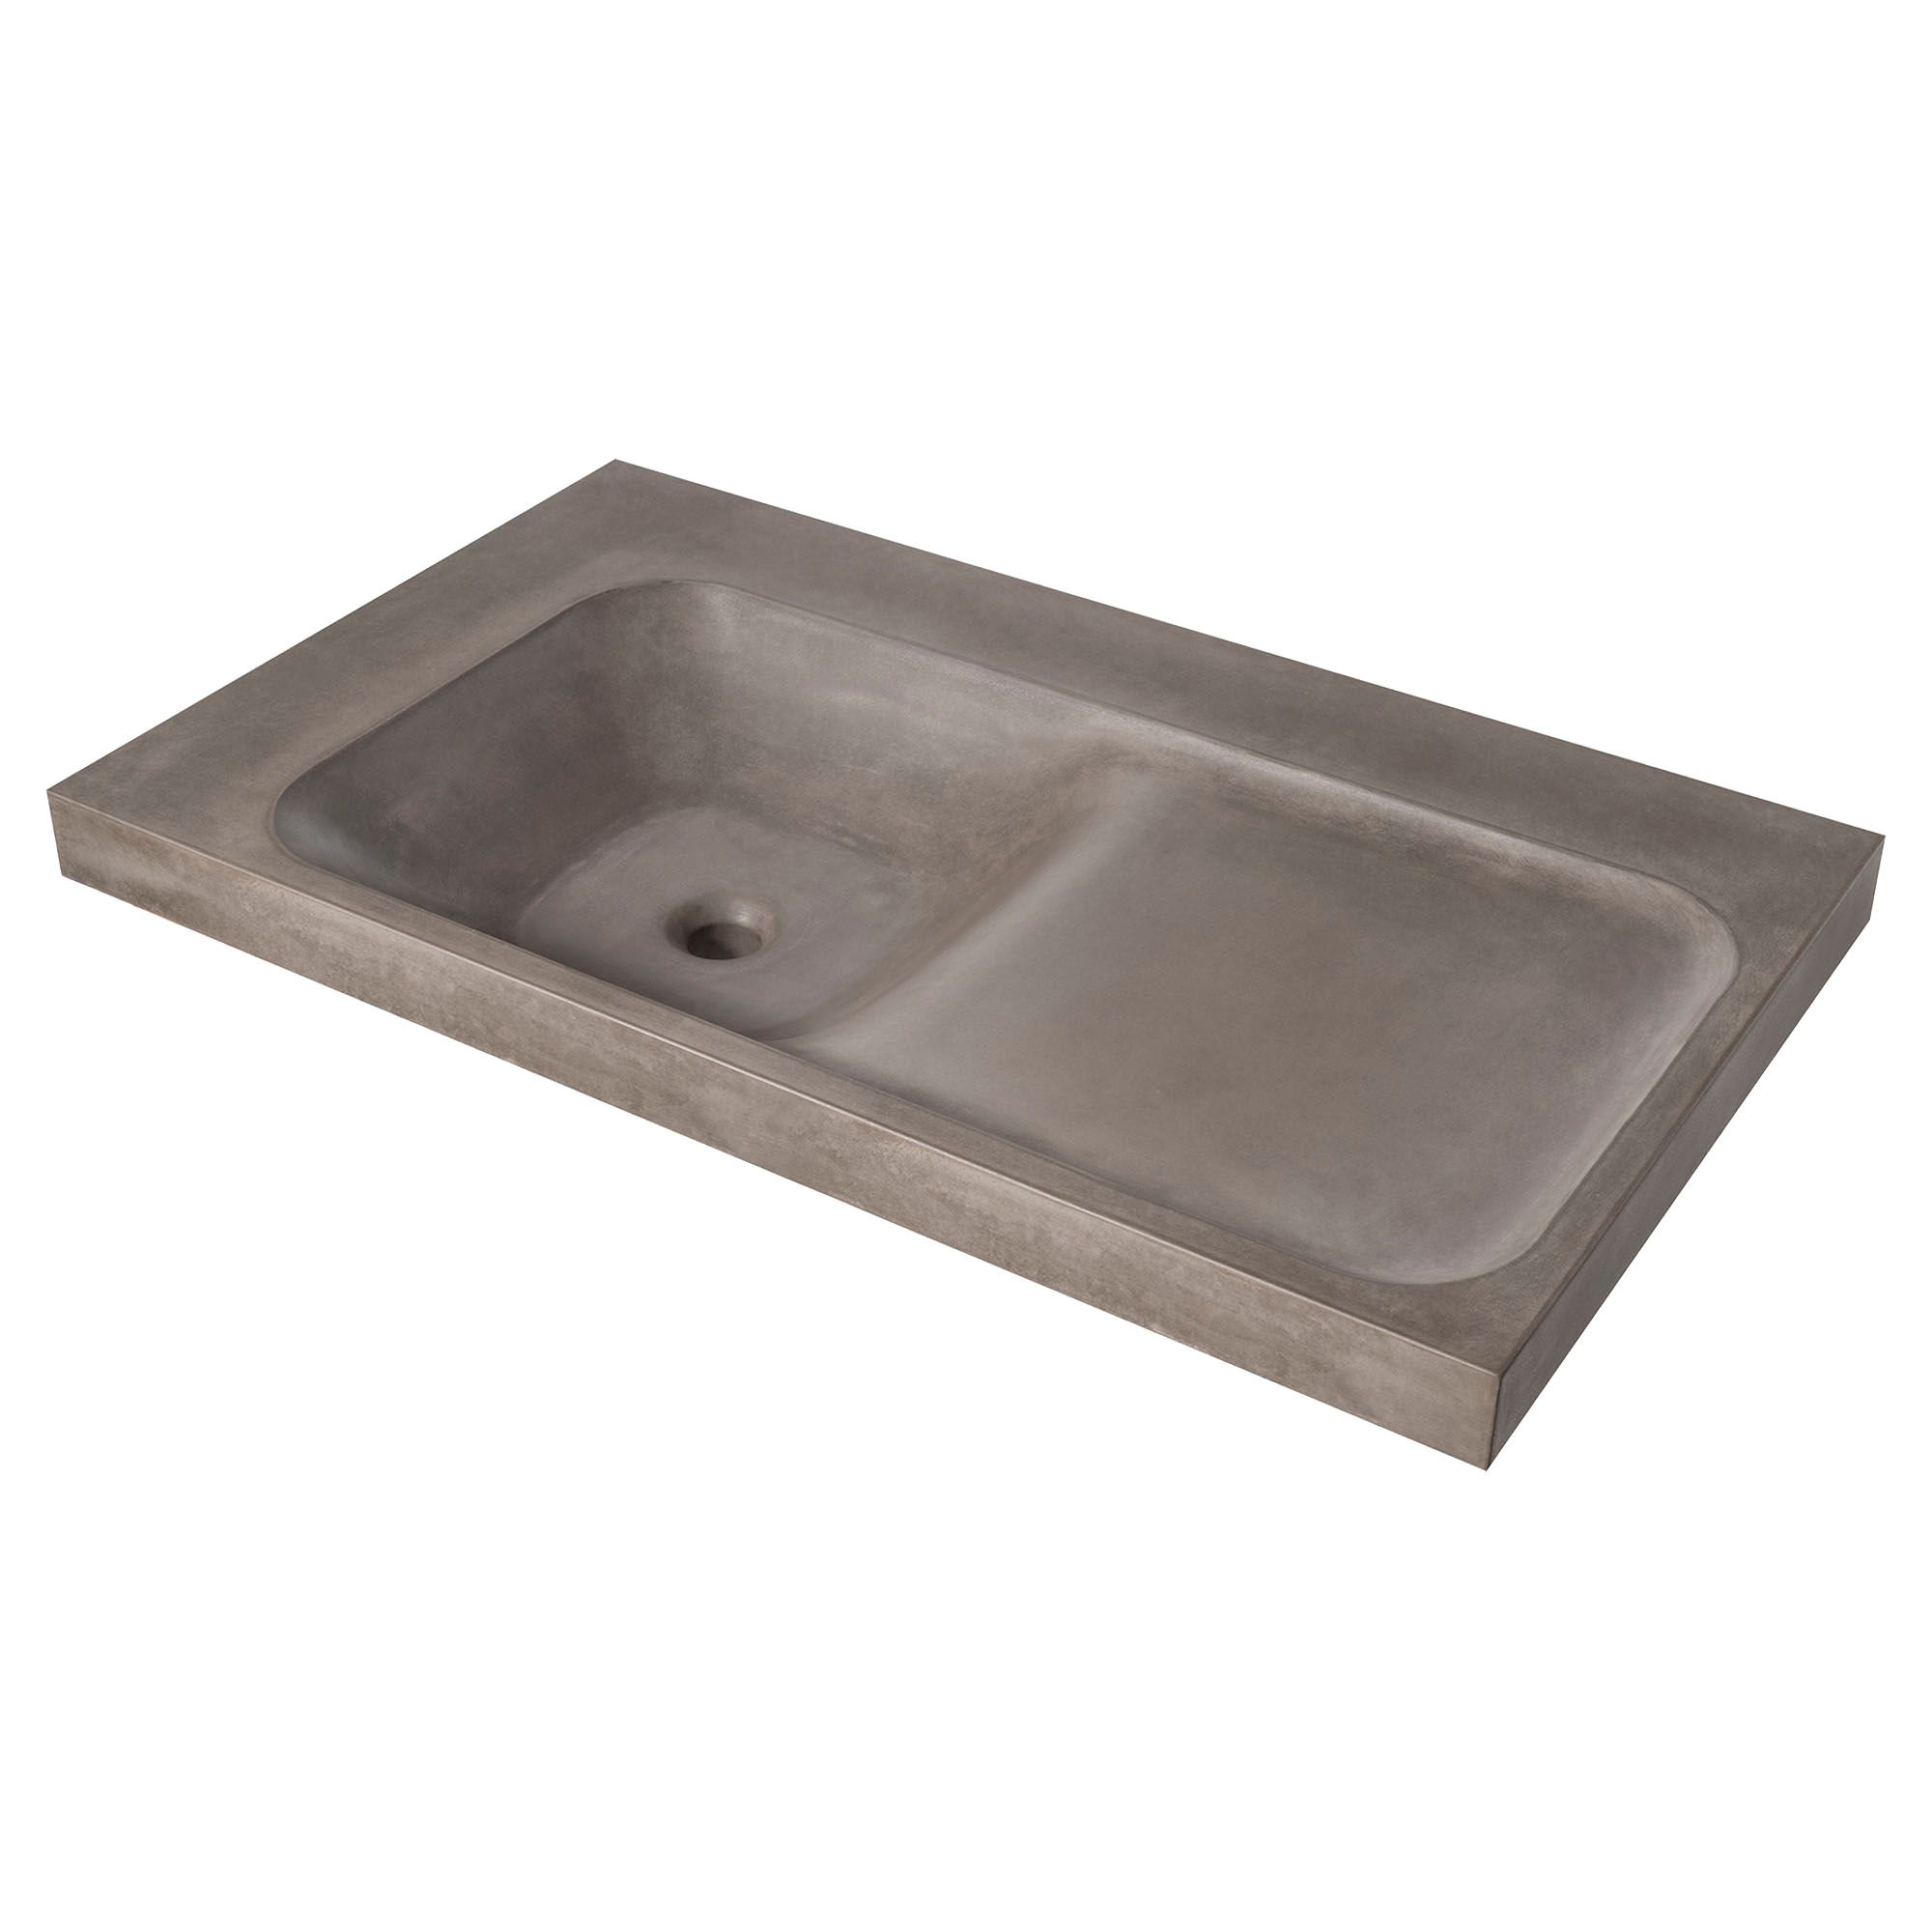 standard of sinks kitchen sink stainless fresh steel undermount american